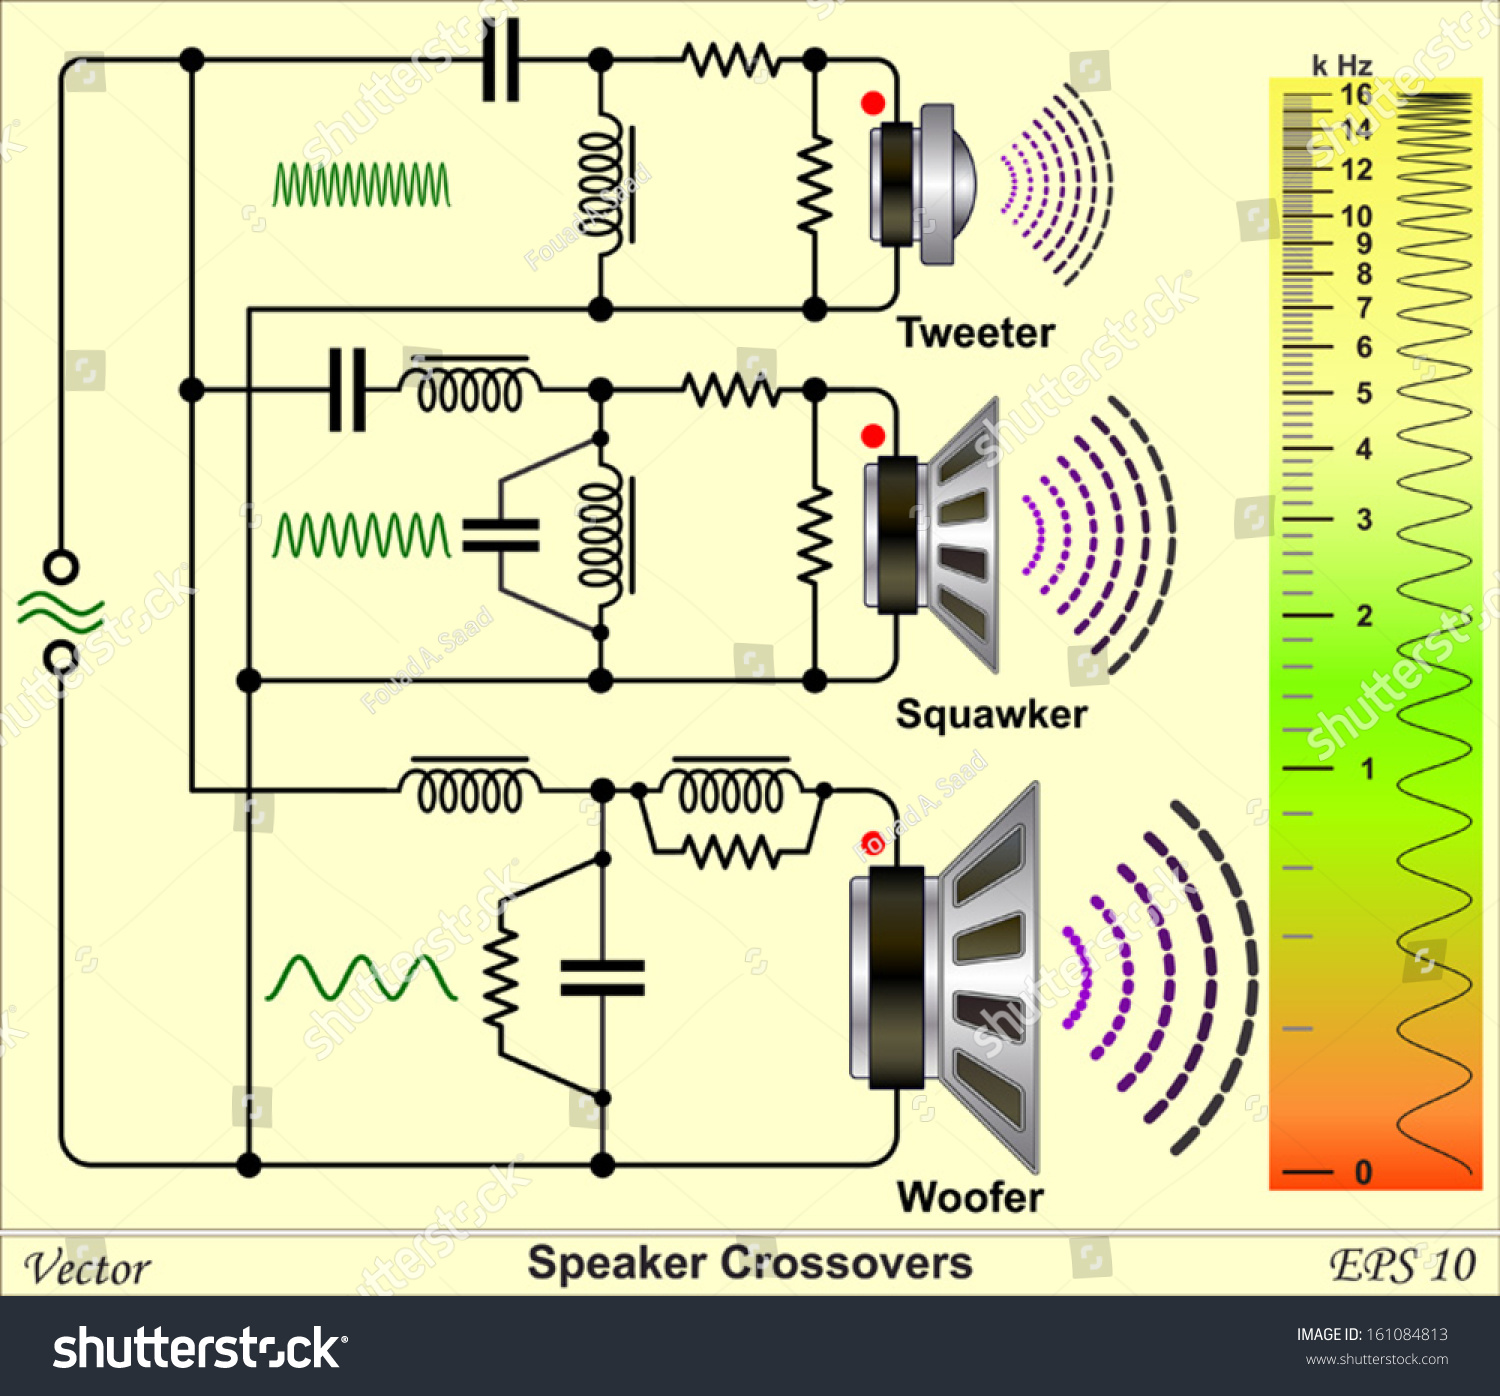 Speaker Crossovers Circuit Diagram Stock Vector Royalty Free How To Build Mic